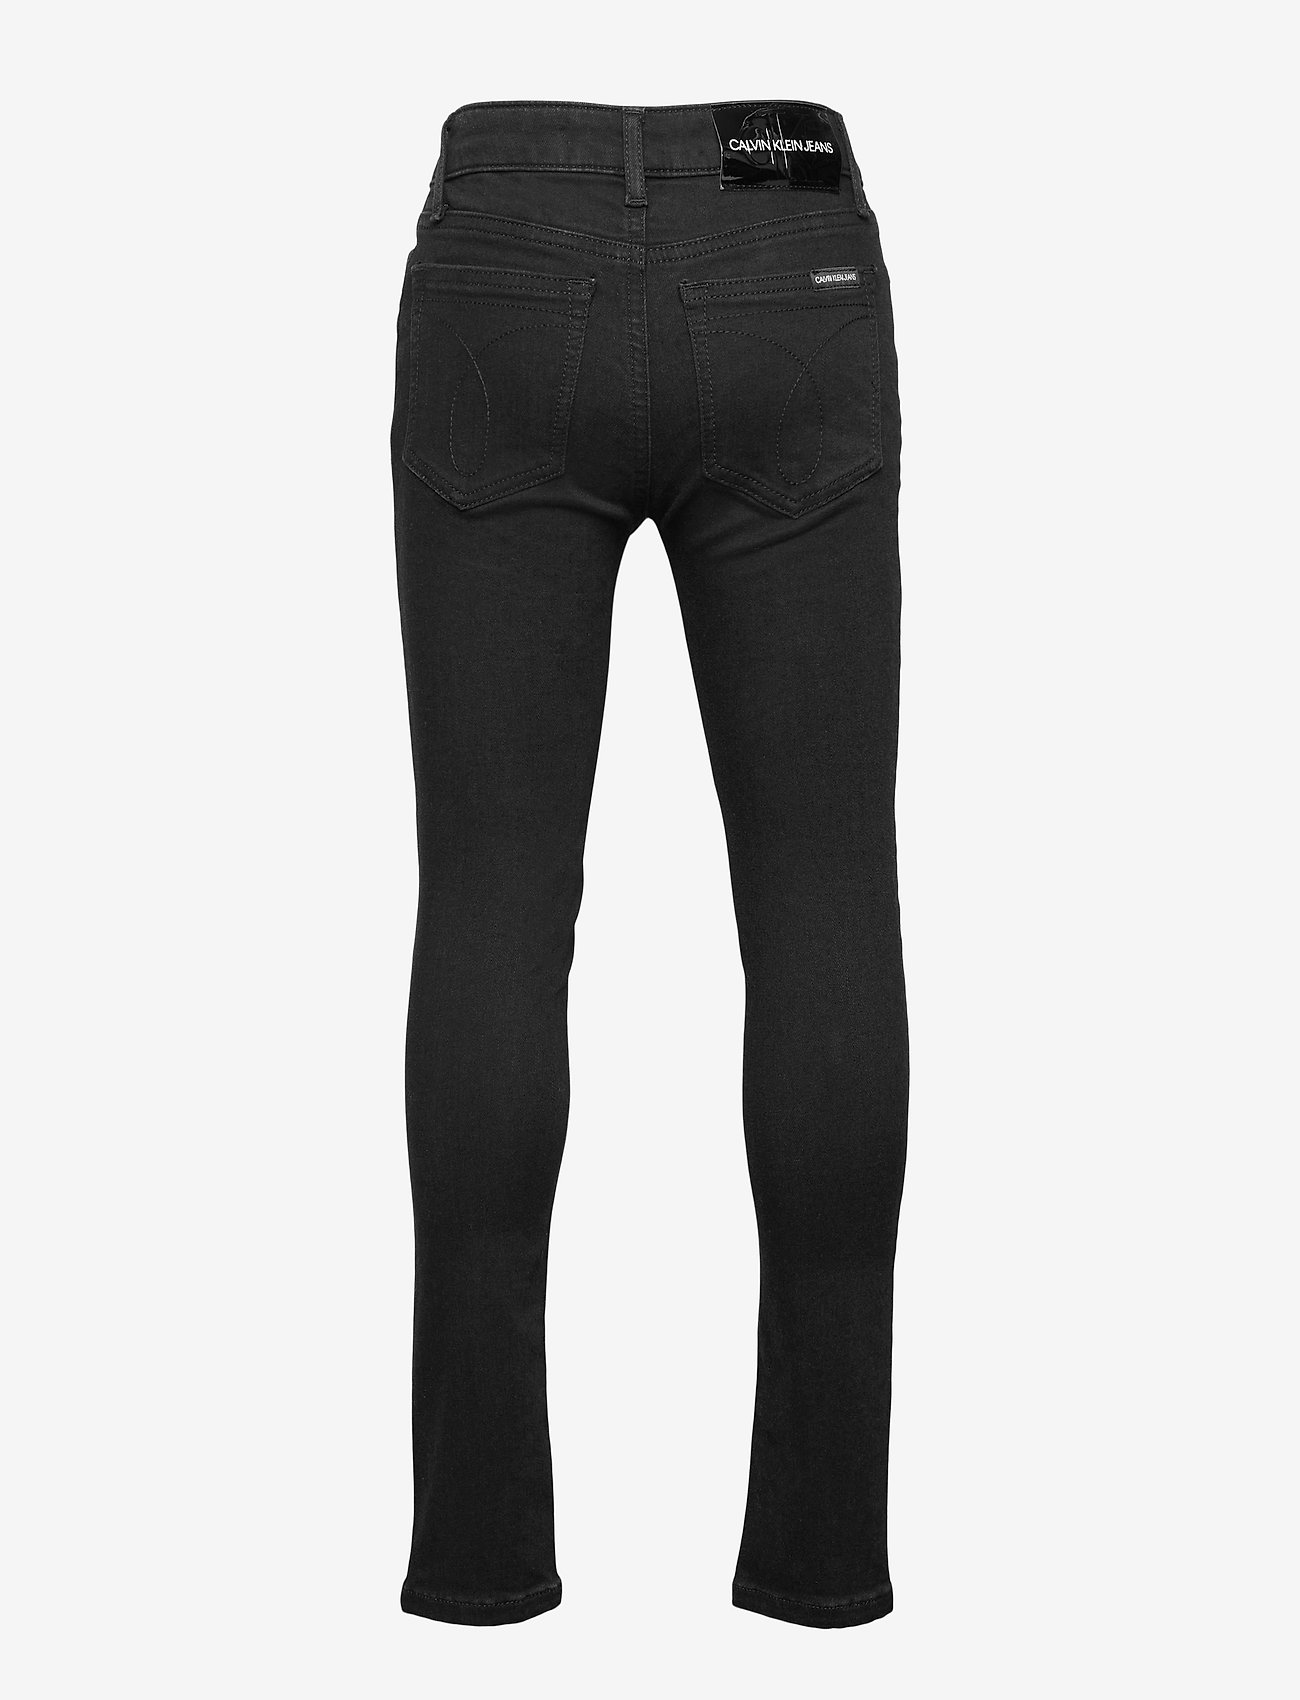 Calvin Klein - SKINNY HR CLEAN BLK STR - jeans - clean black stretch - 1